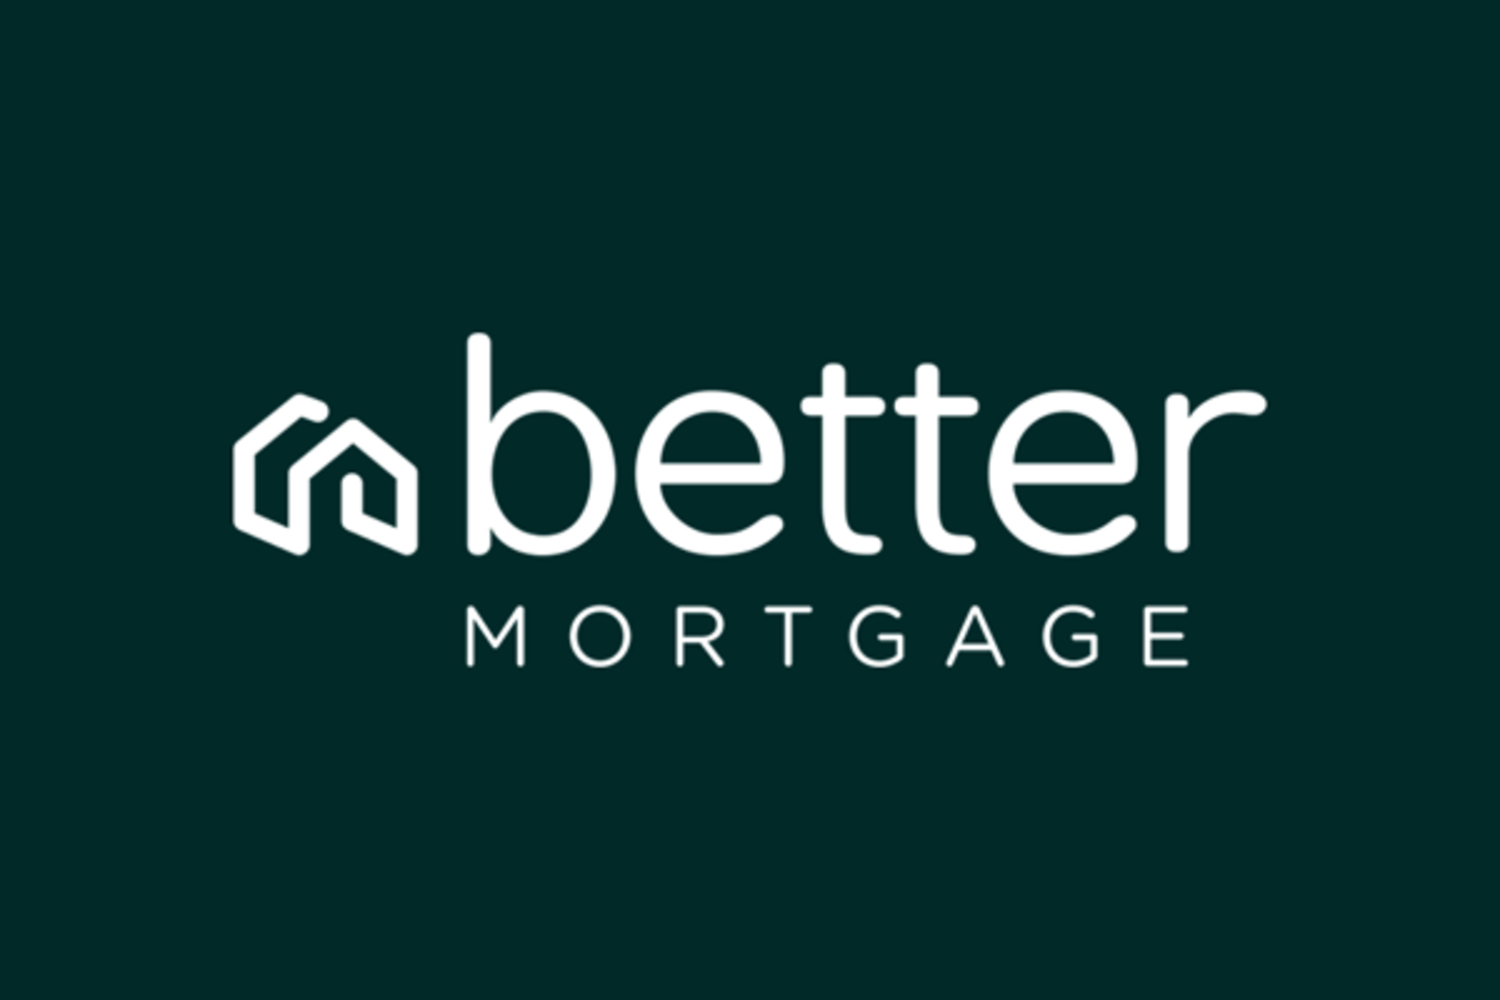 Lender Better Mortgage Gets New Kleiner Perkins Funding Valuing Firm at $220 Million